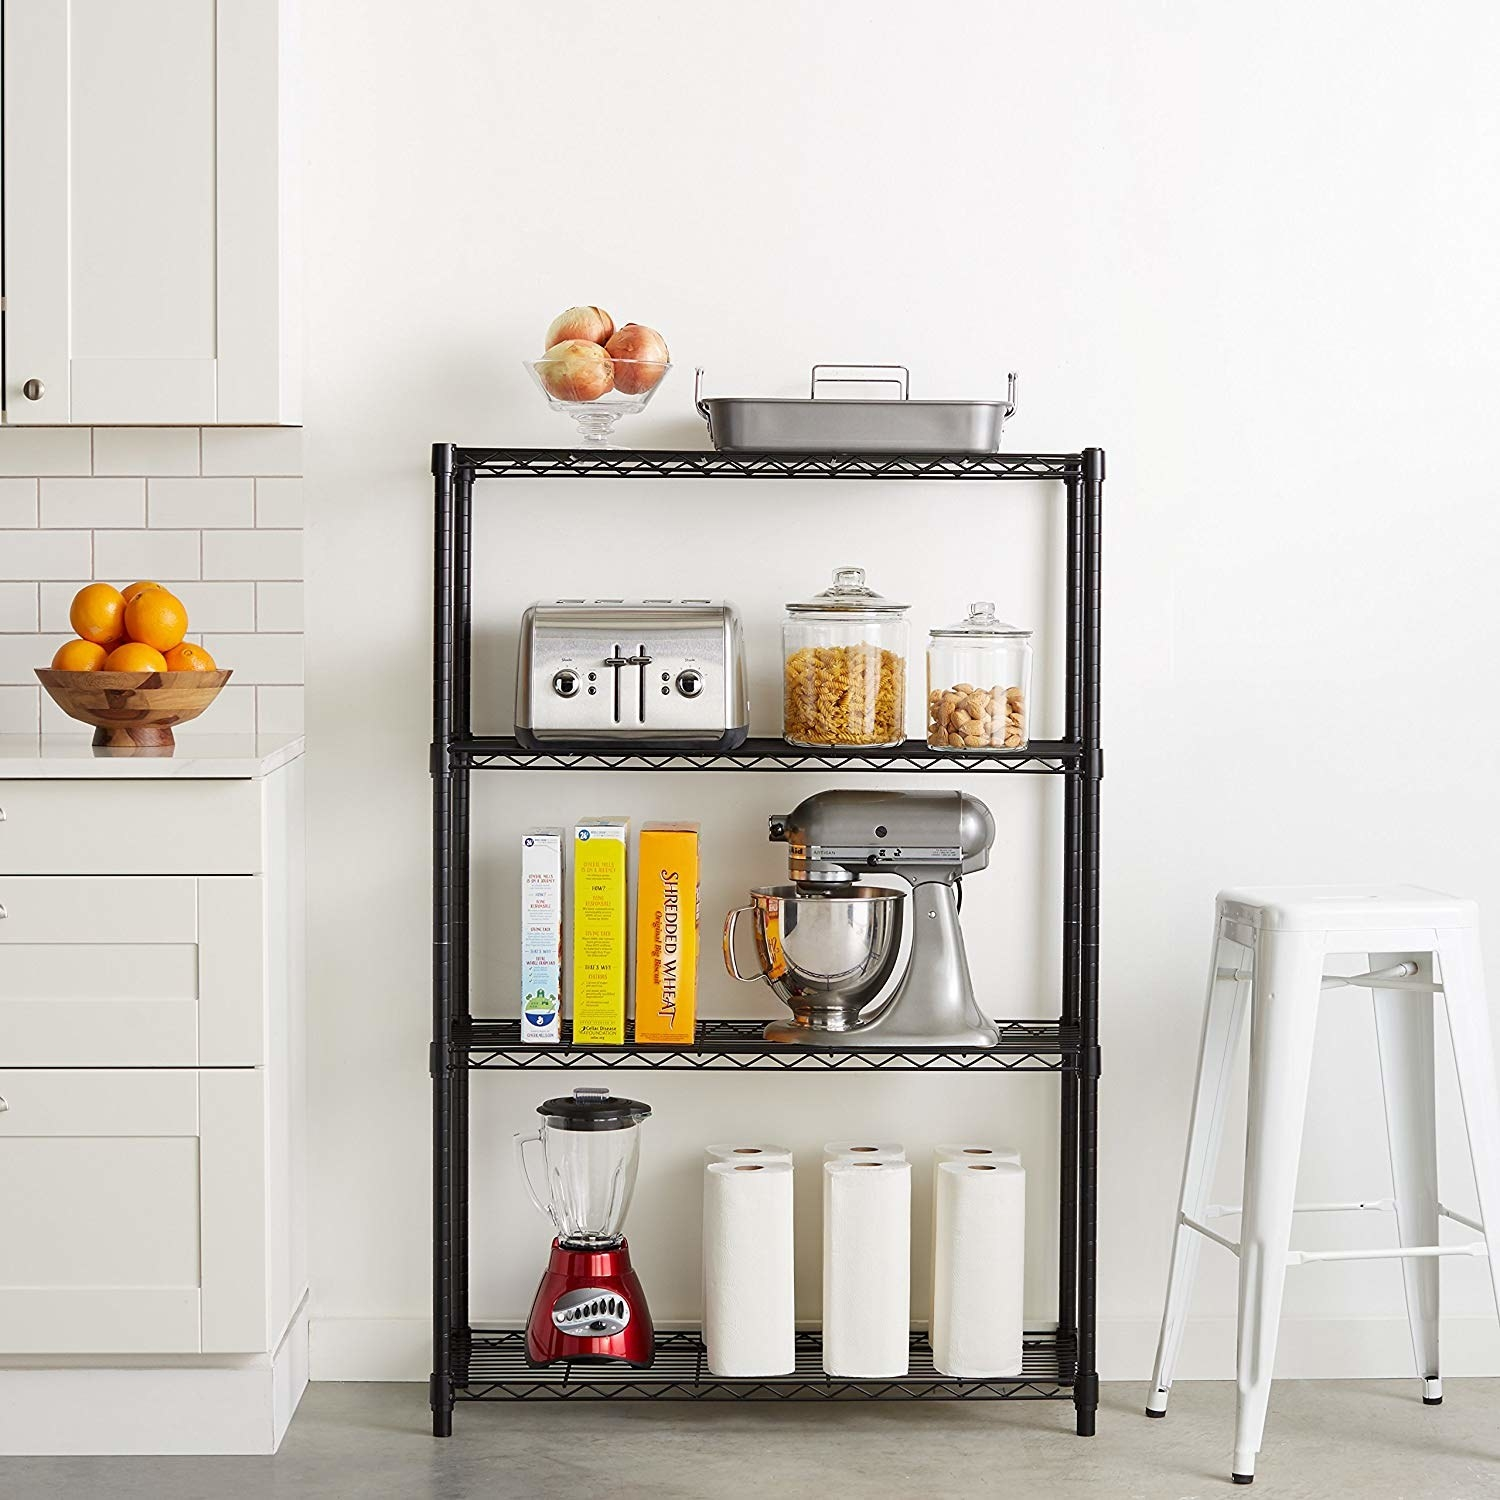 the black wire shelf unit with various small kitchen appliances displayed on it